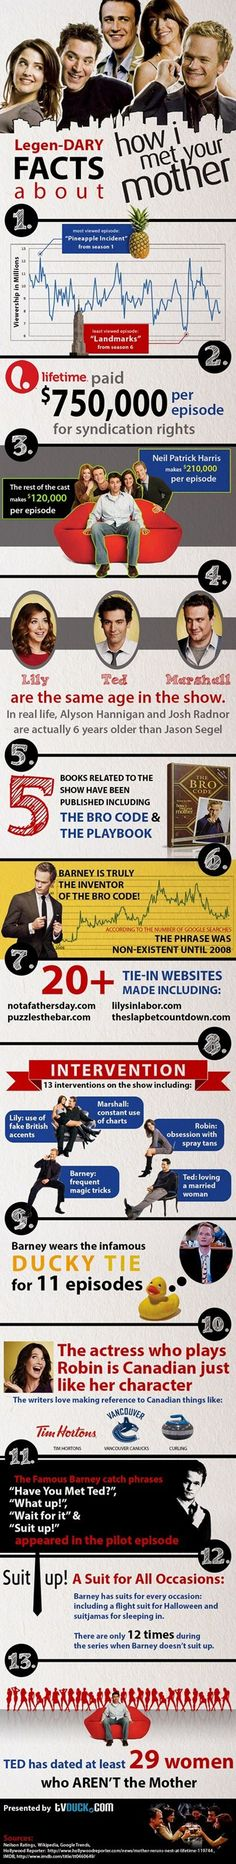 Fun How I Met Your Mother Facts – Infographic